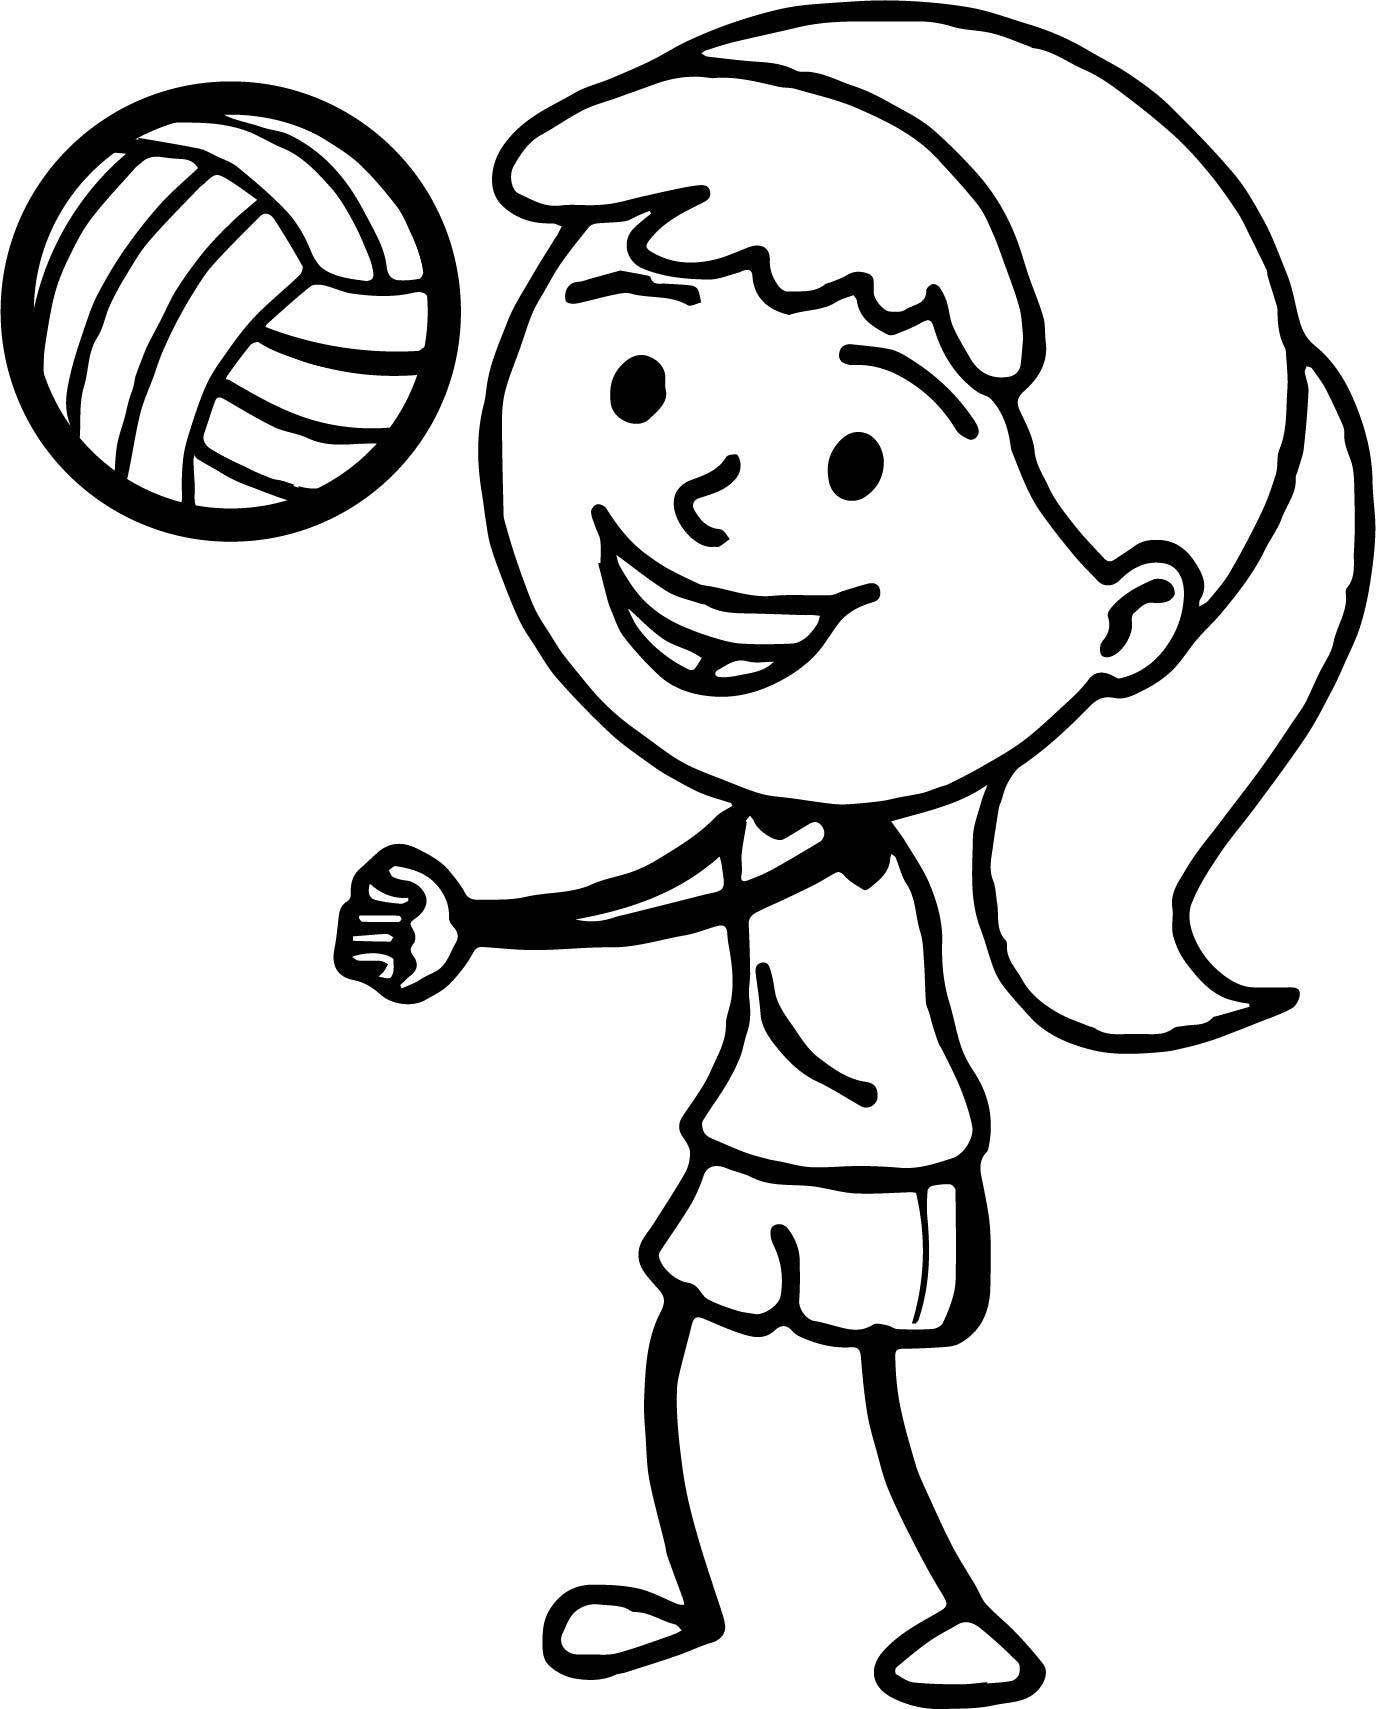 volleyball coloring pages printable - volleyball printable free download best volleyball